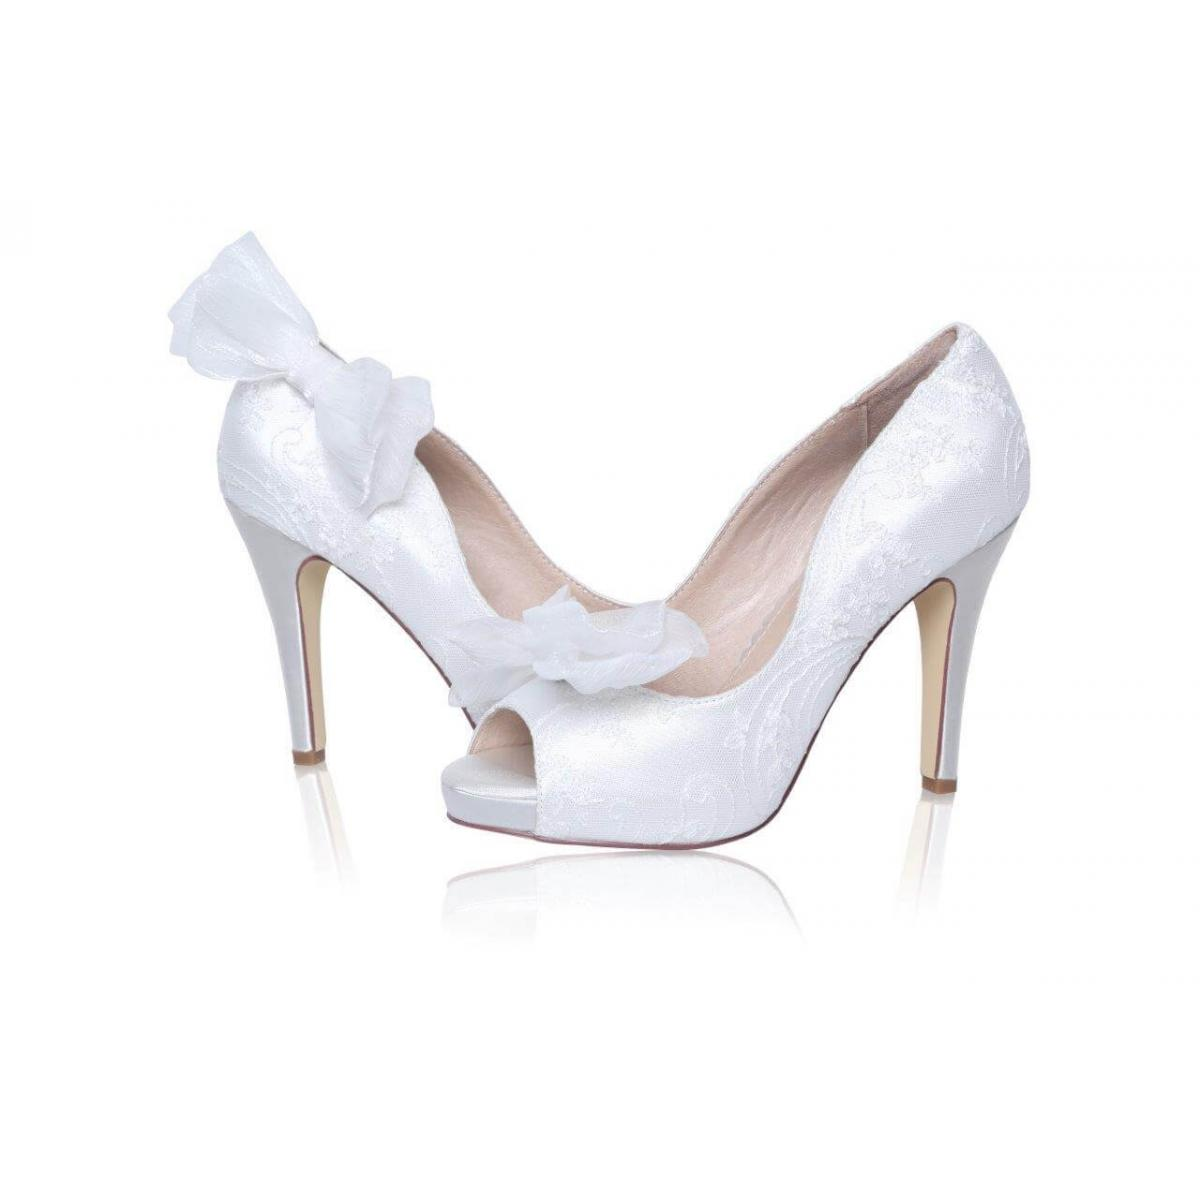 Perfect Bridal Daphne Shoe Trim - Ivory 1